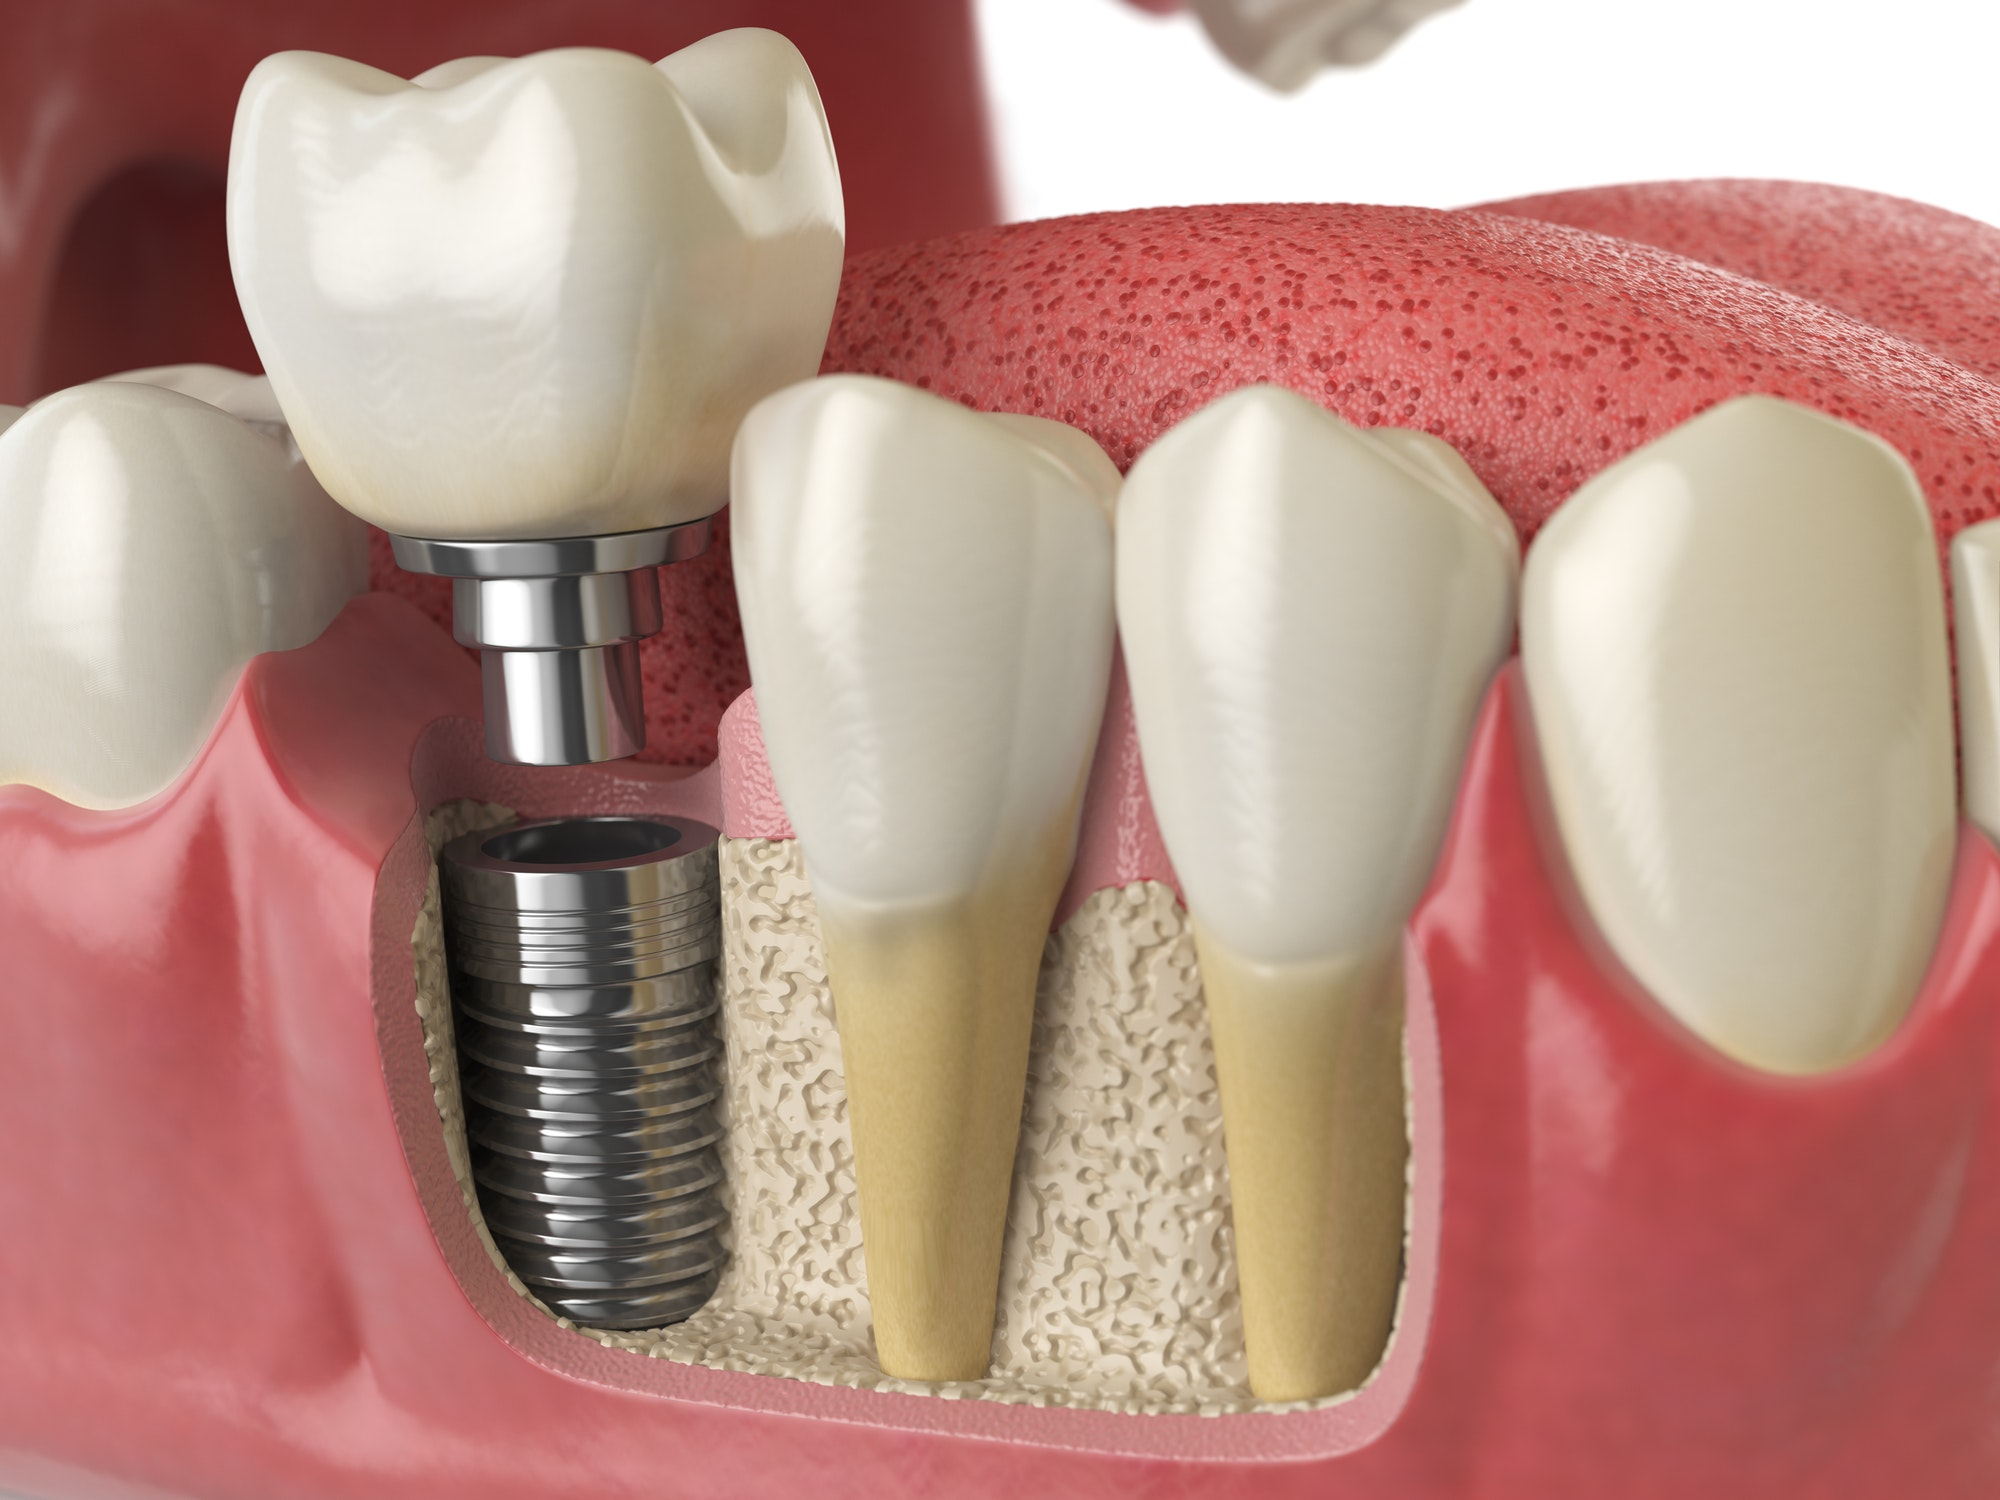 ooth dental implant in human denture